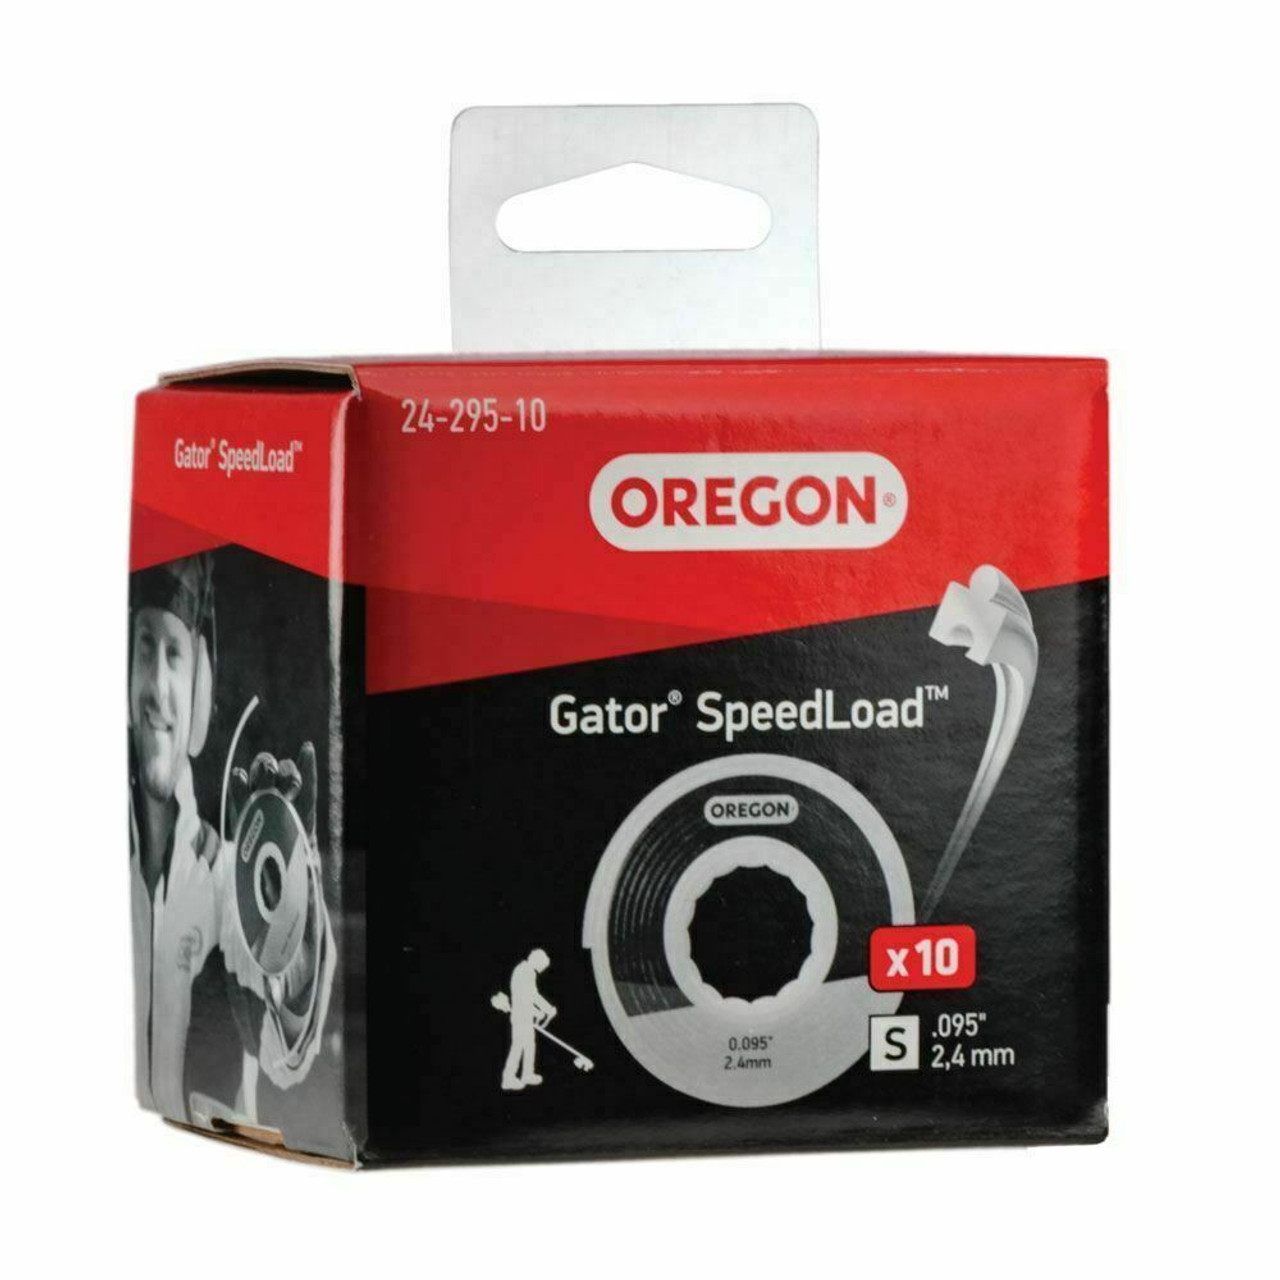 "10 Pack Oregon 24-295-10 Gator SpeedLoad Small Disc .095"" Trimmer line"